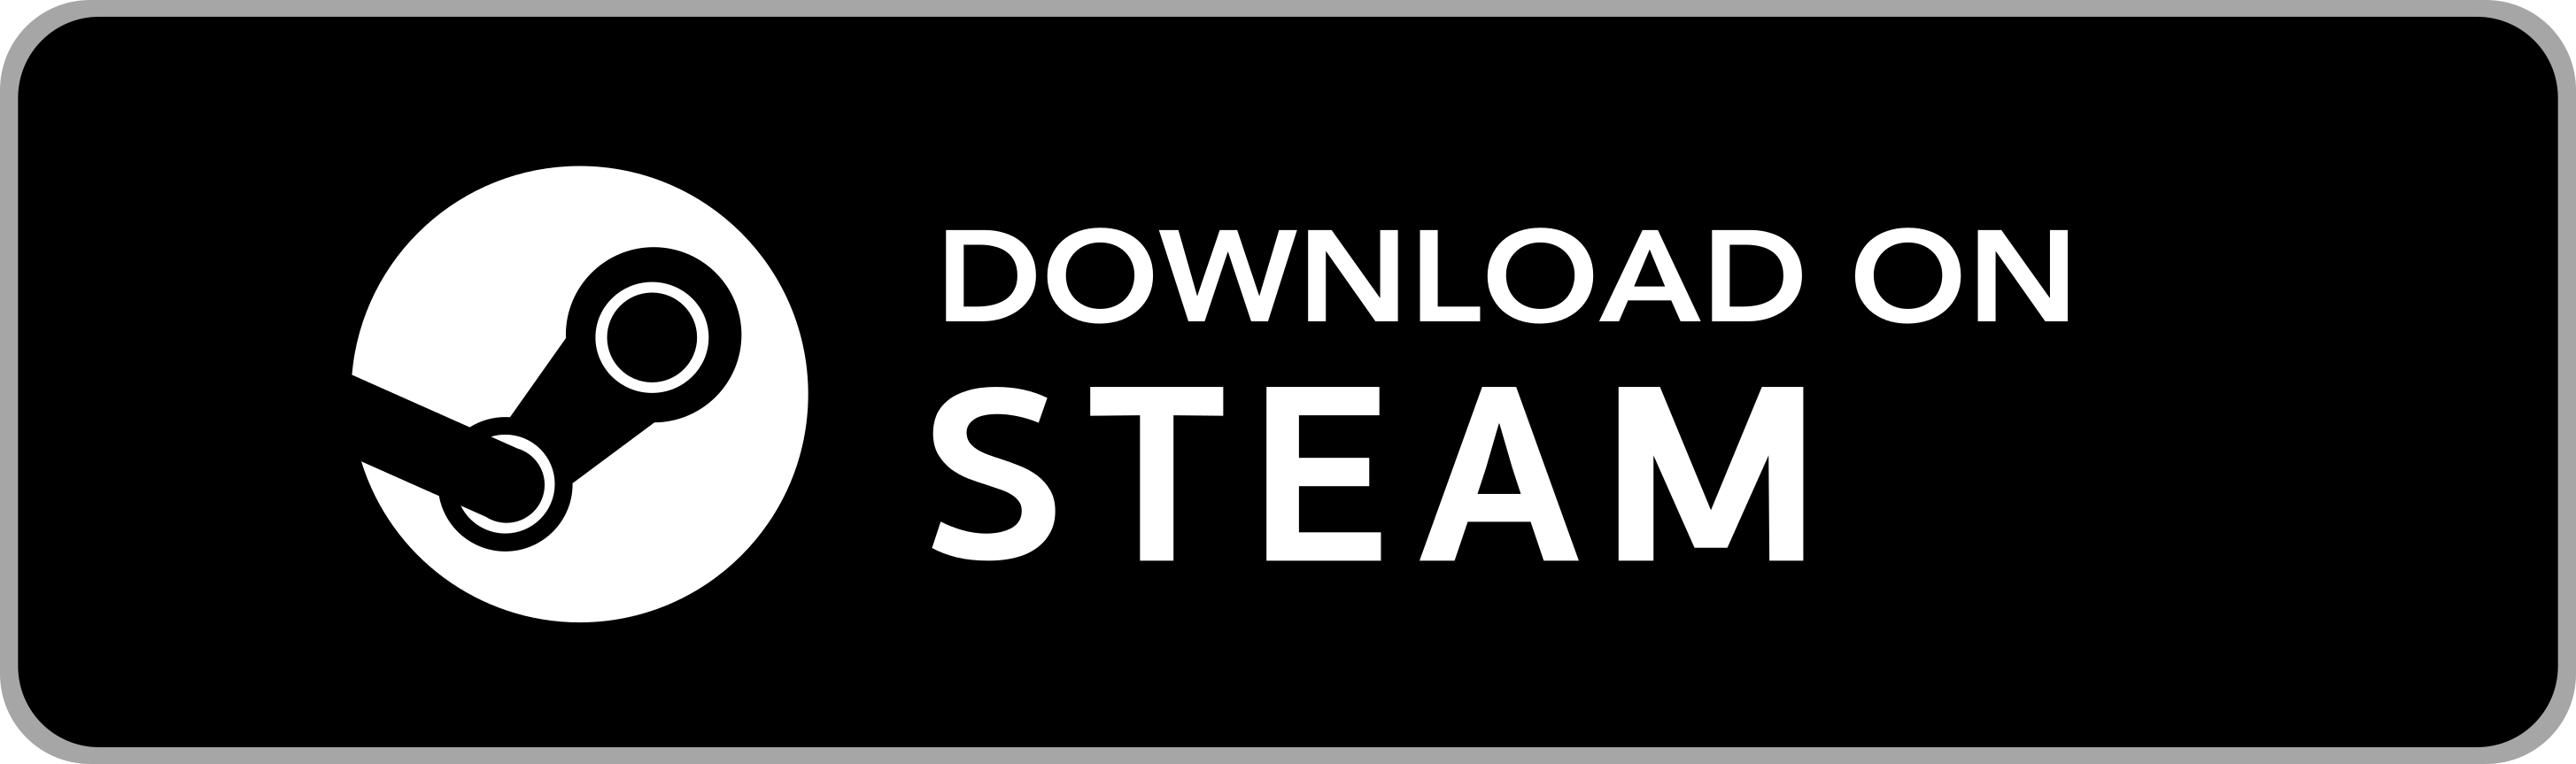 download on steam